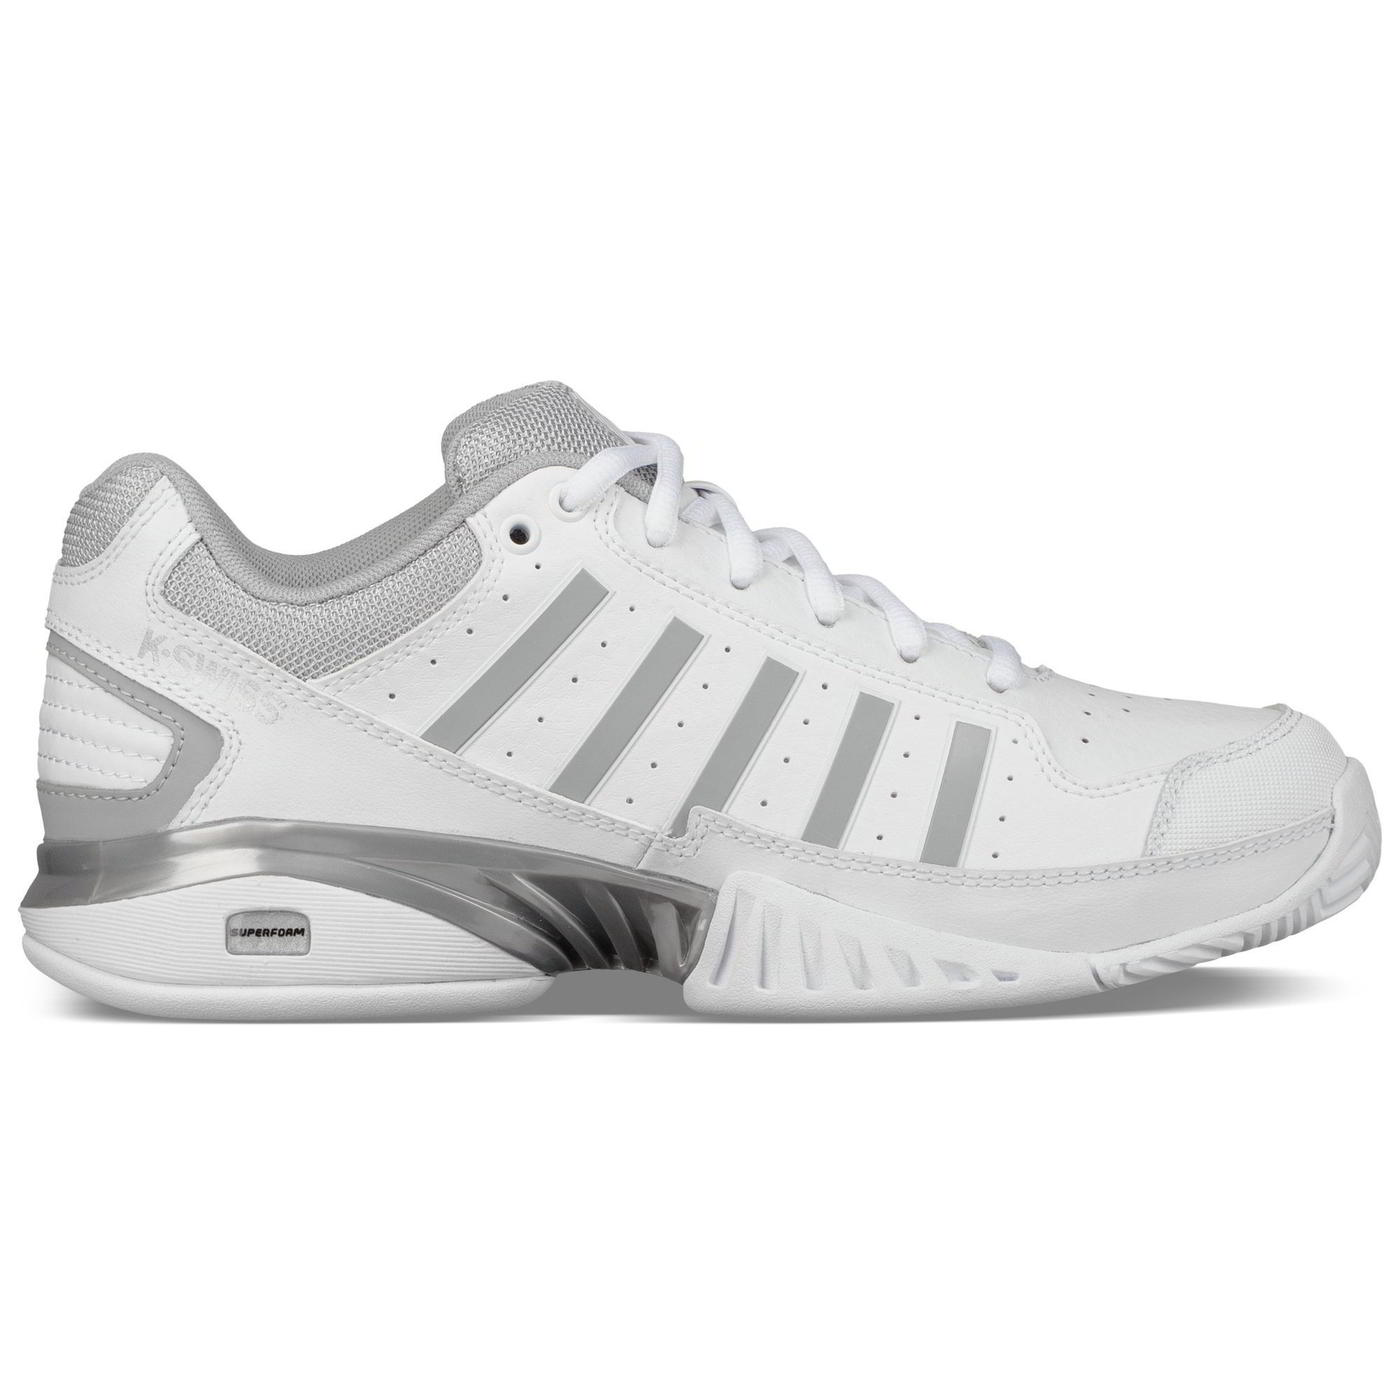 K-Swiss Womens Receiver IV Tennis Shoes Trainers - White High Rise